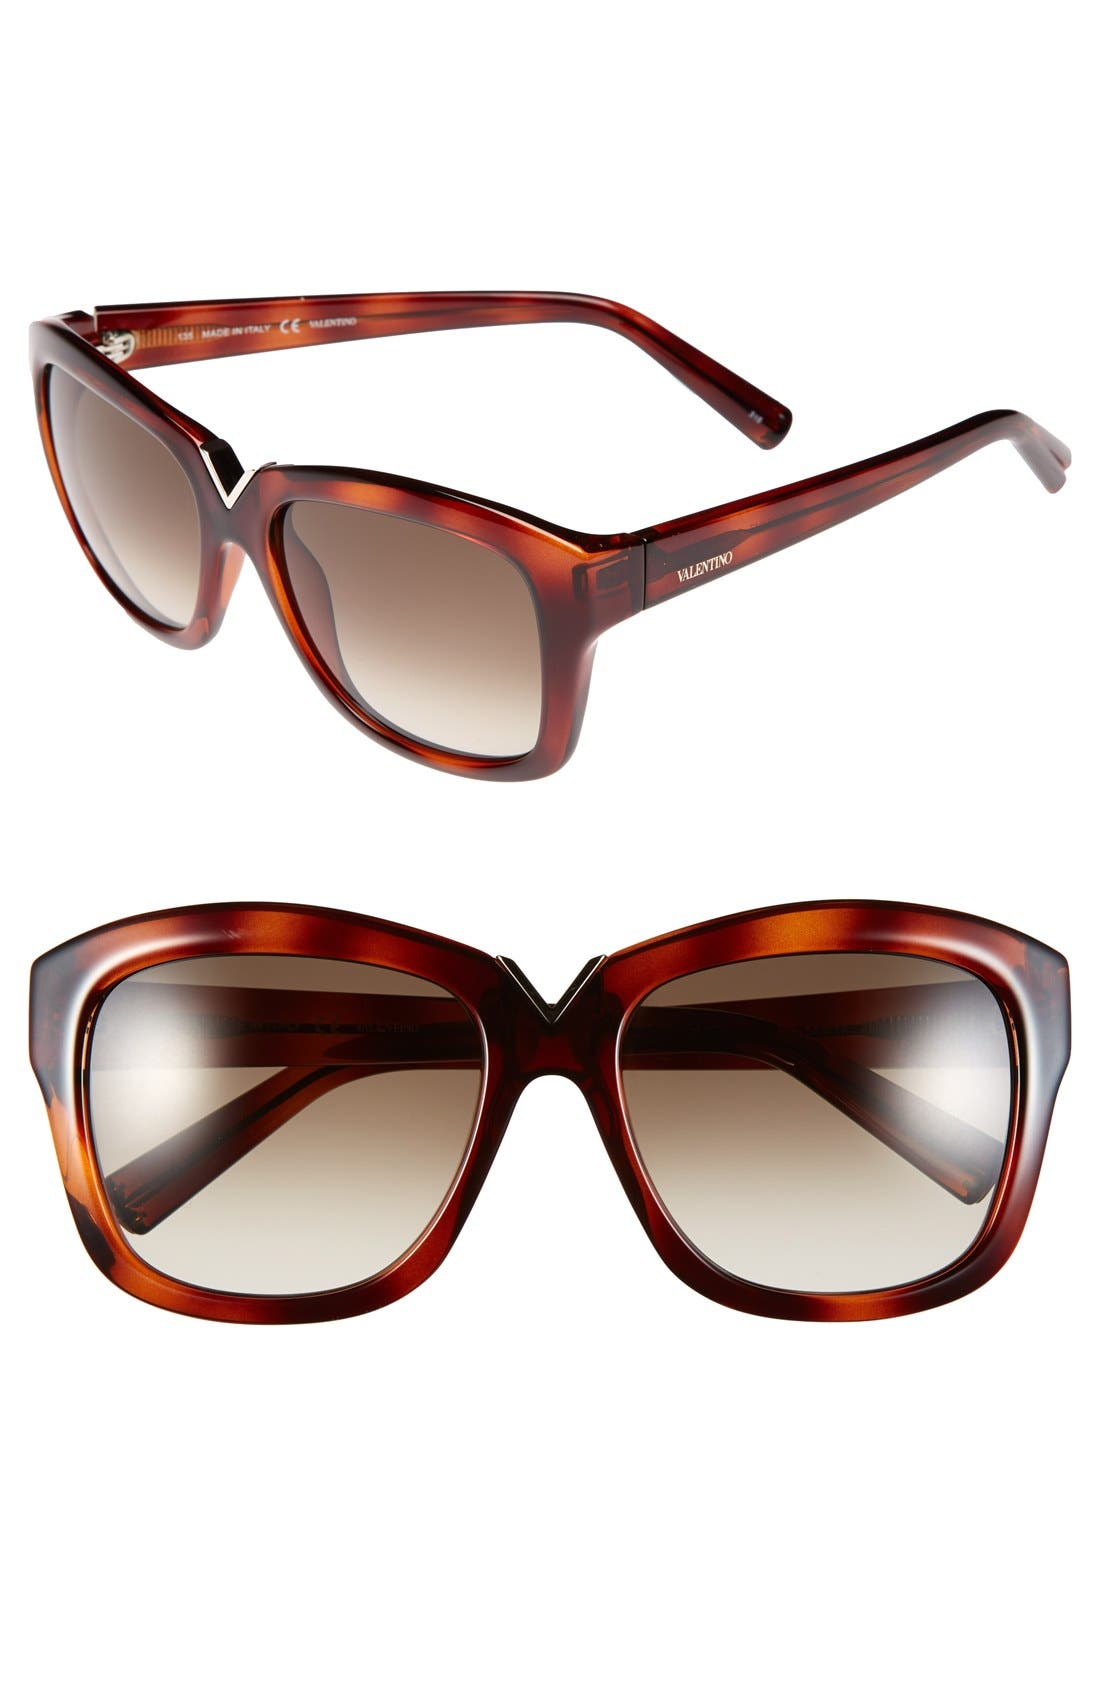 Alternate Image 1 Selected - Valentino 55mm Retro Sunglasses